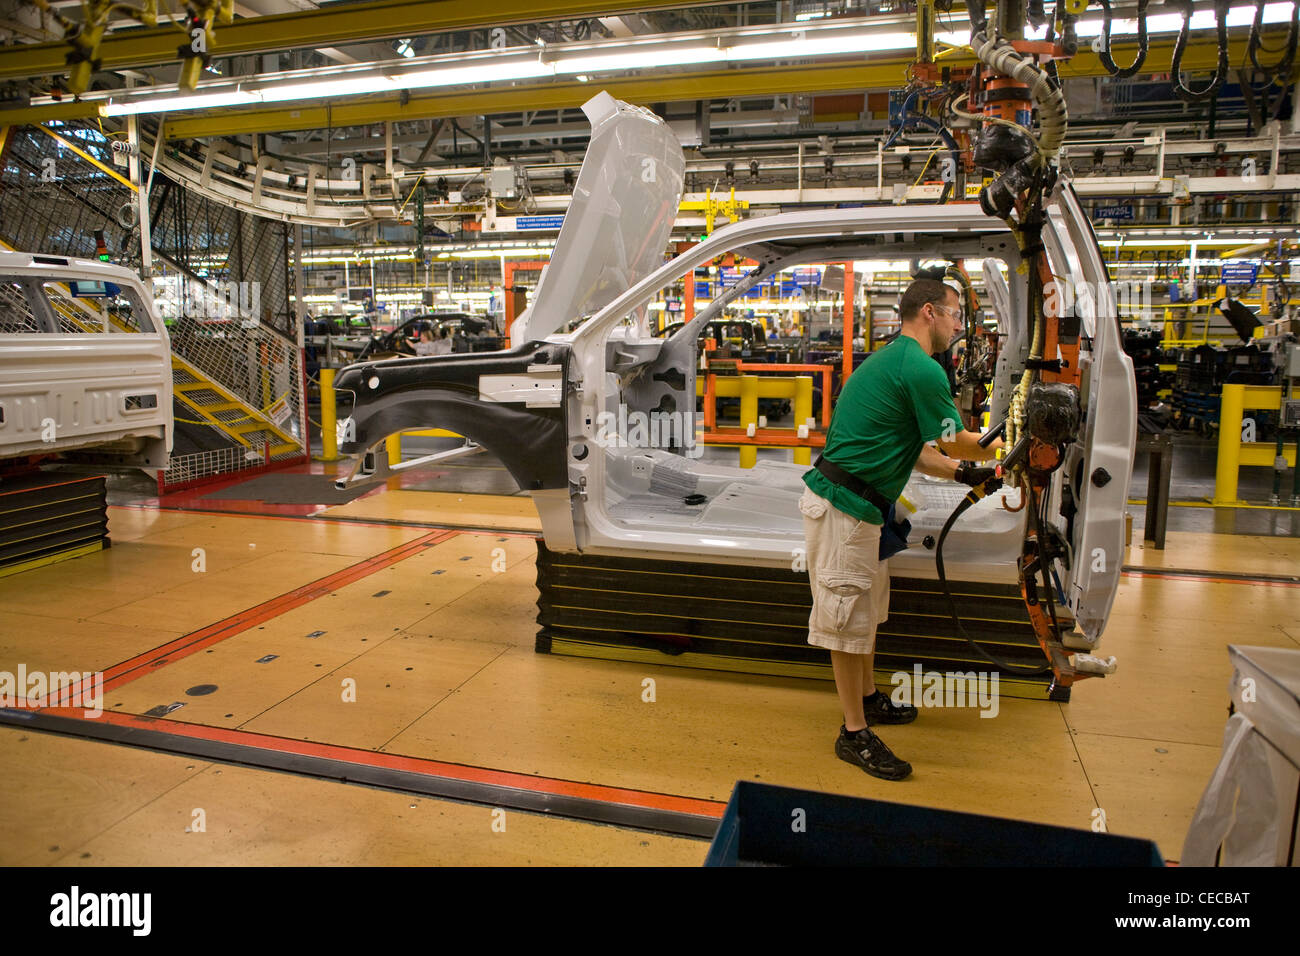 A factory worker installs door hardware on an F-150 pickup truck at the Ford final assembly plant production line - Stock Image